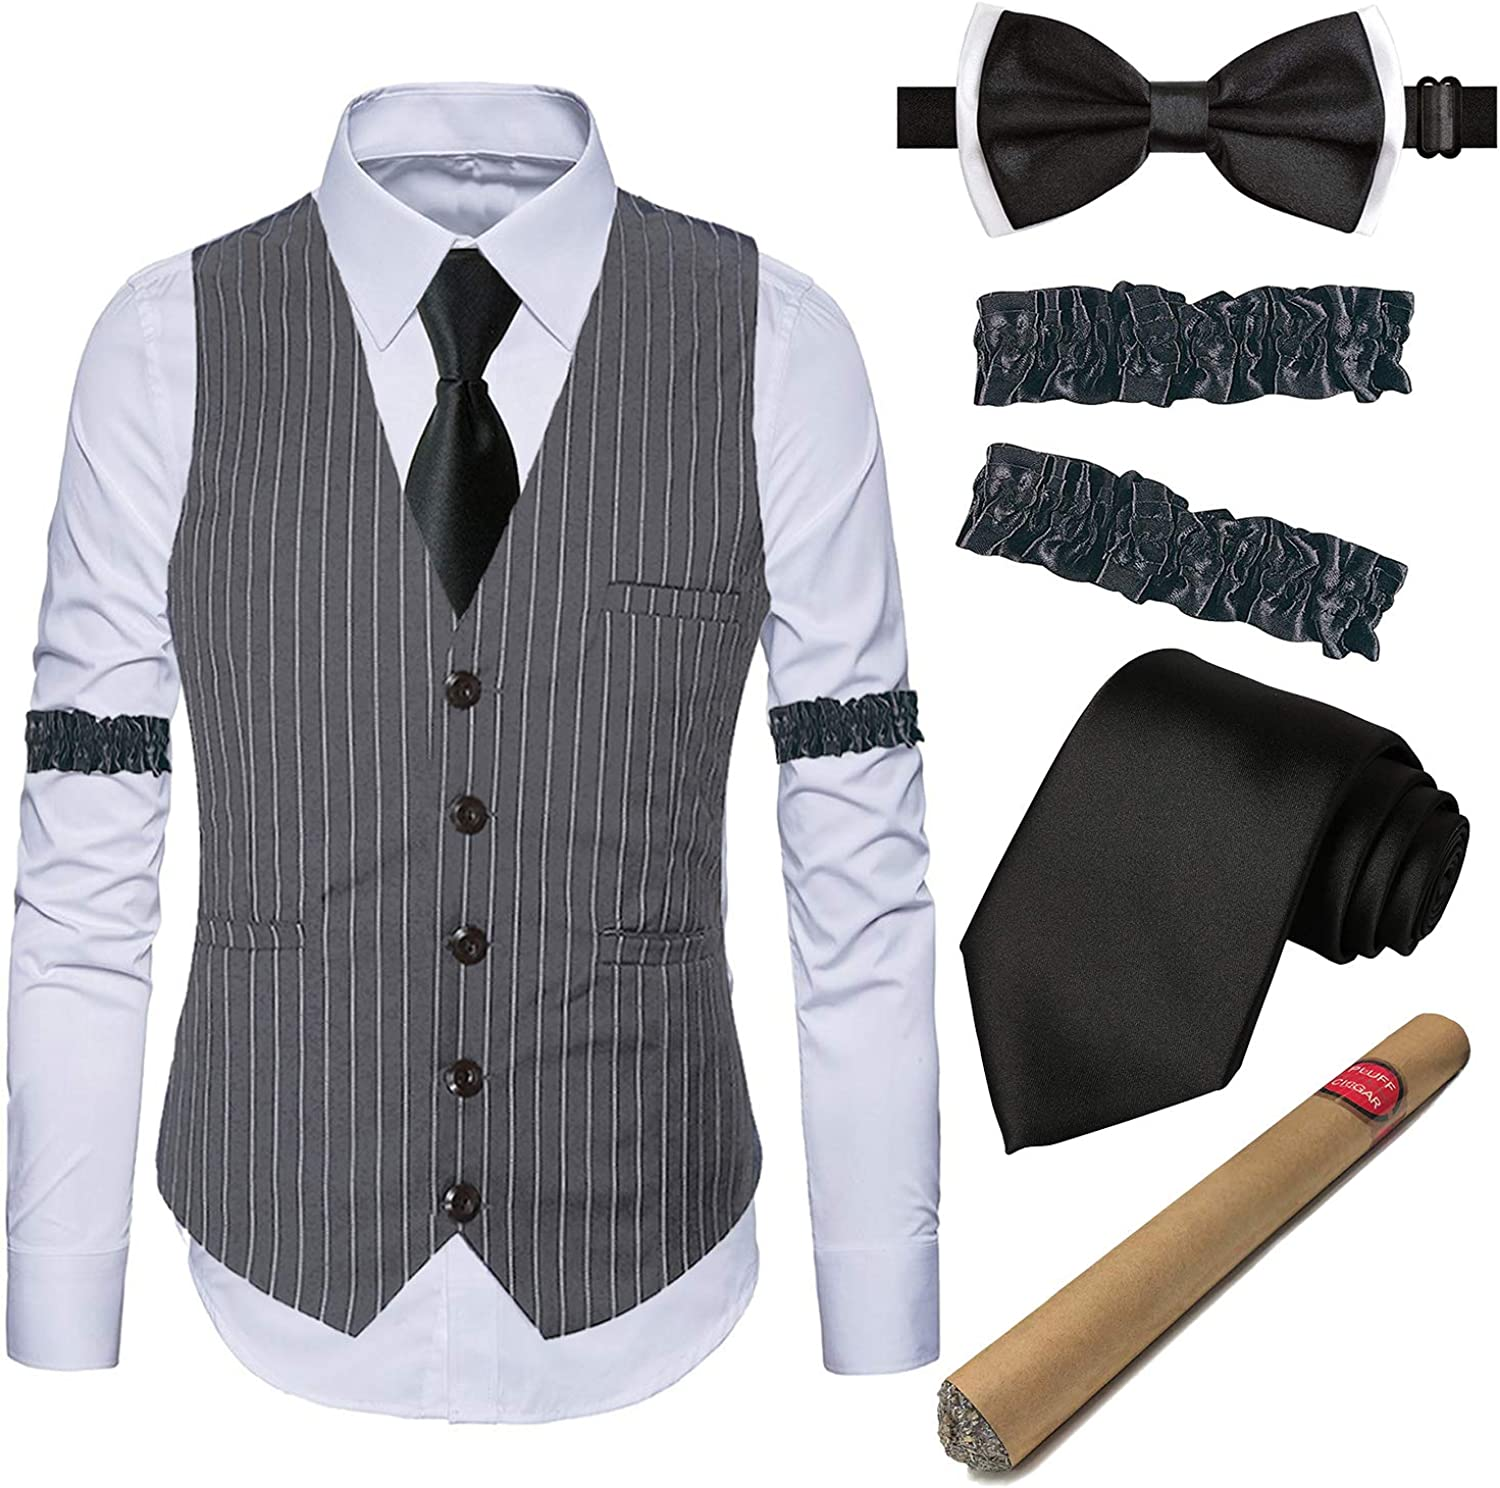 1920s Gatsby Costume Accessories for Mens Gangster Stripe Vest,White Dress Suit Shirt & Armbands,Toy Fake Cigar,Tie,Pre Tie